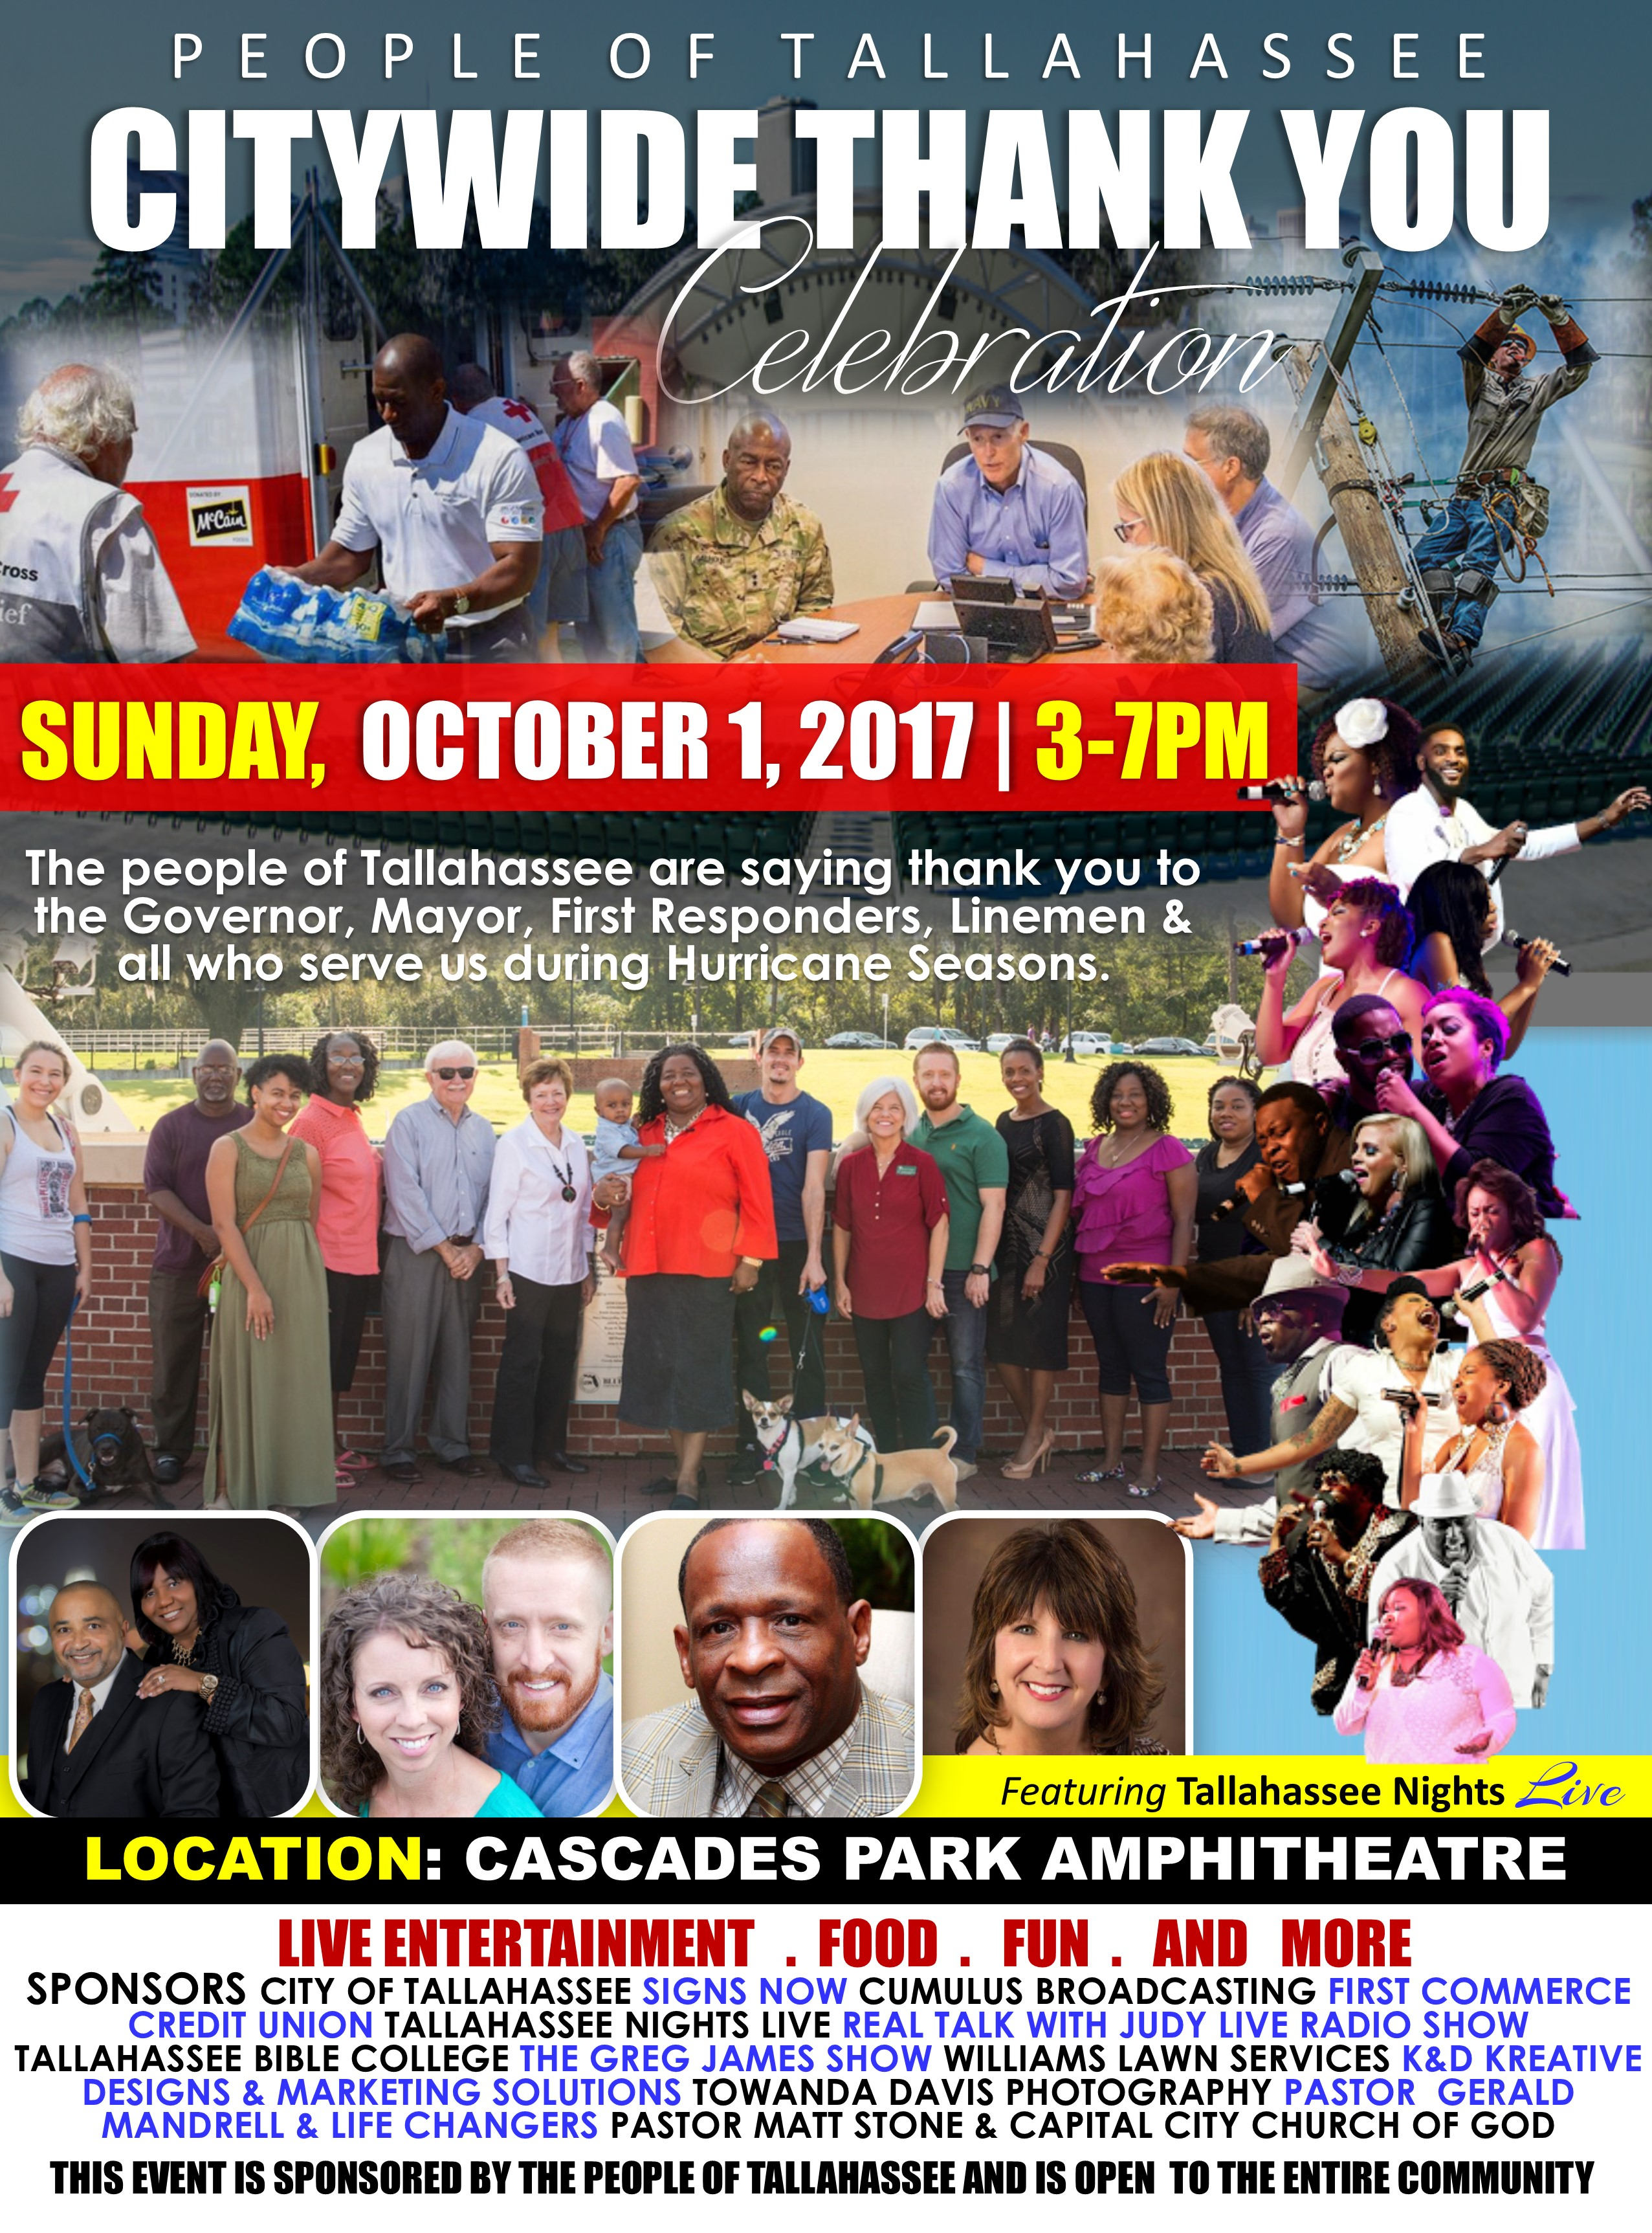 Citywide TY EVENT FLYER